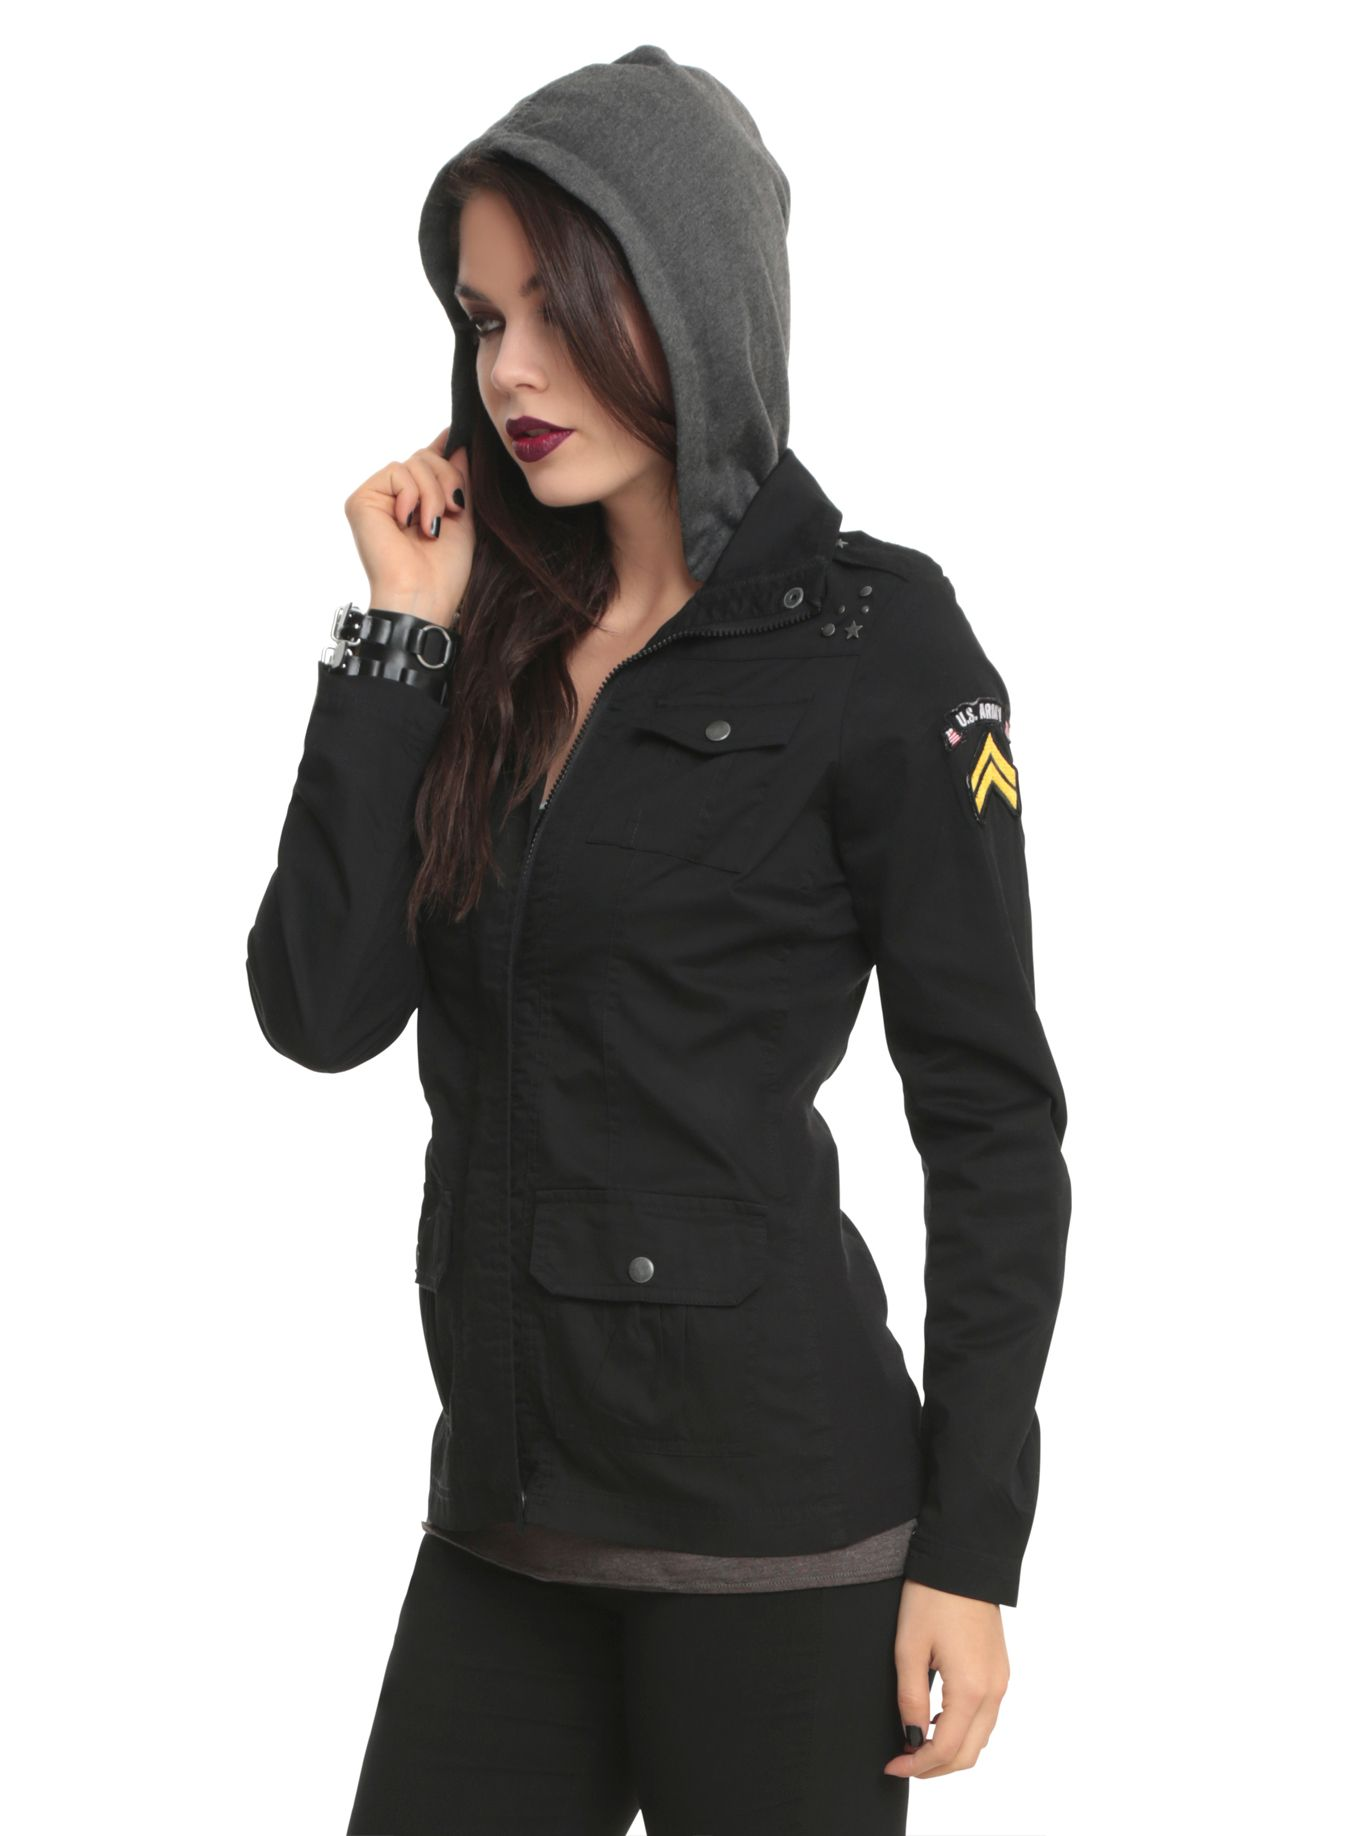 Black Military Patch Jacket Patches Jacket Military Inspired Jacket Jackets [ 1836 x 1360 Pixel ]